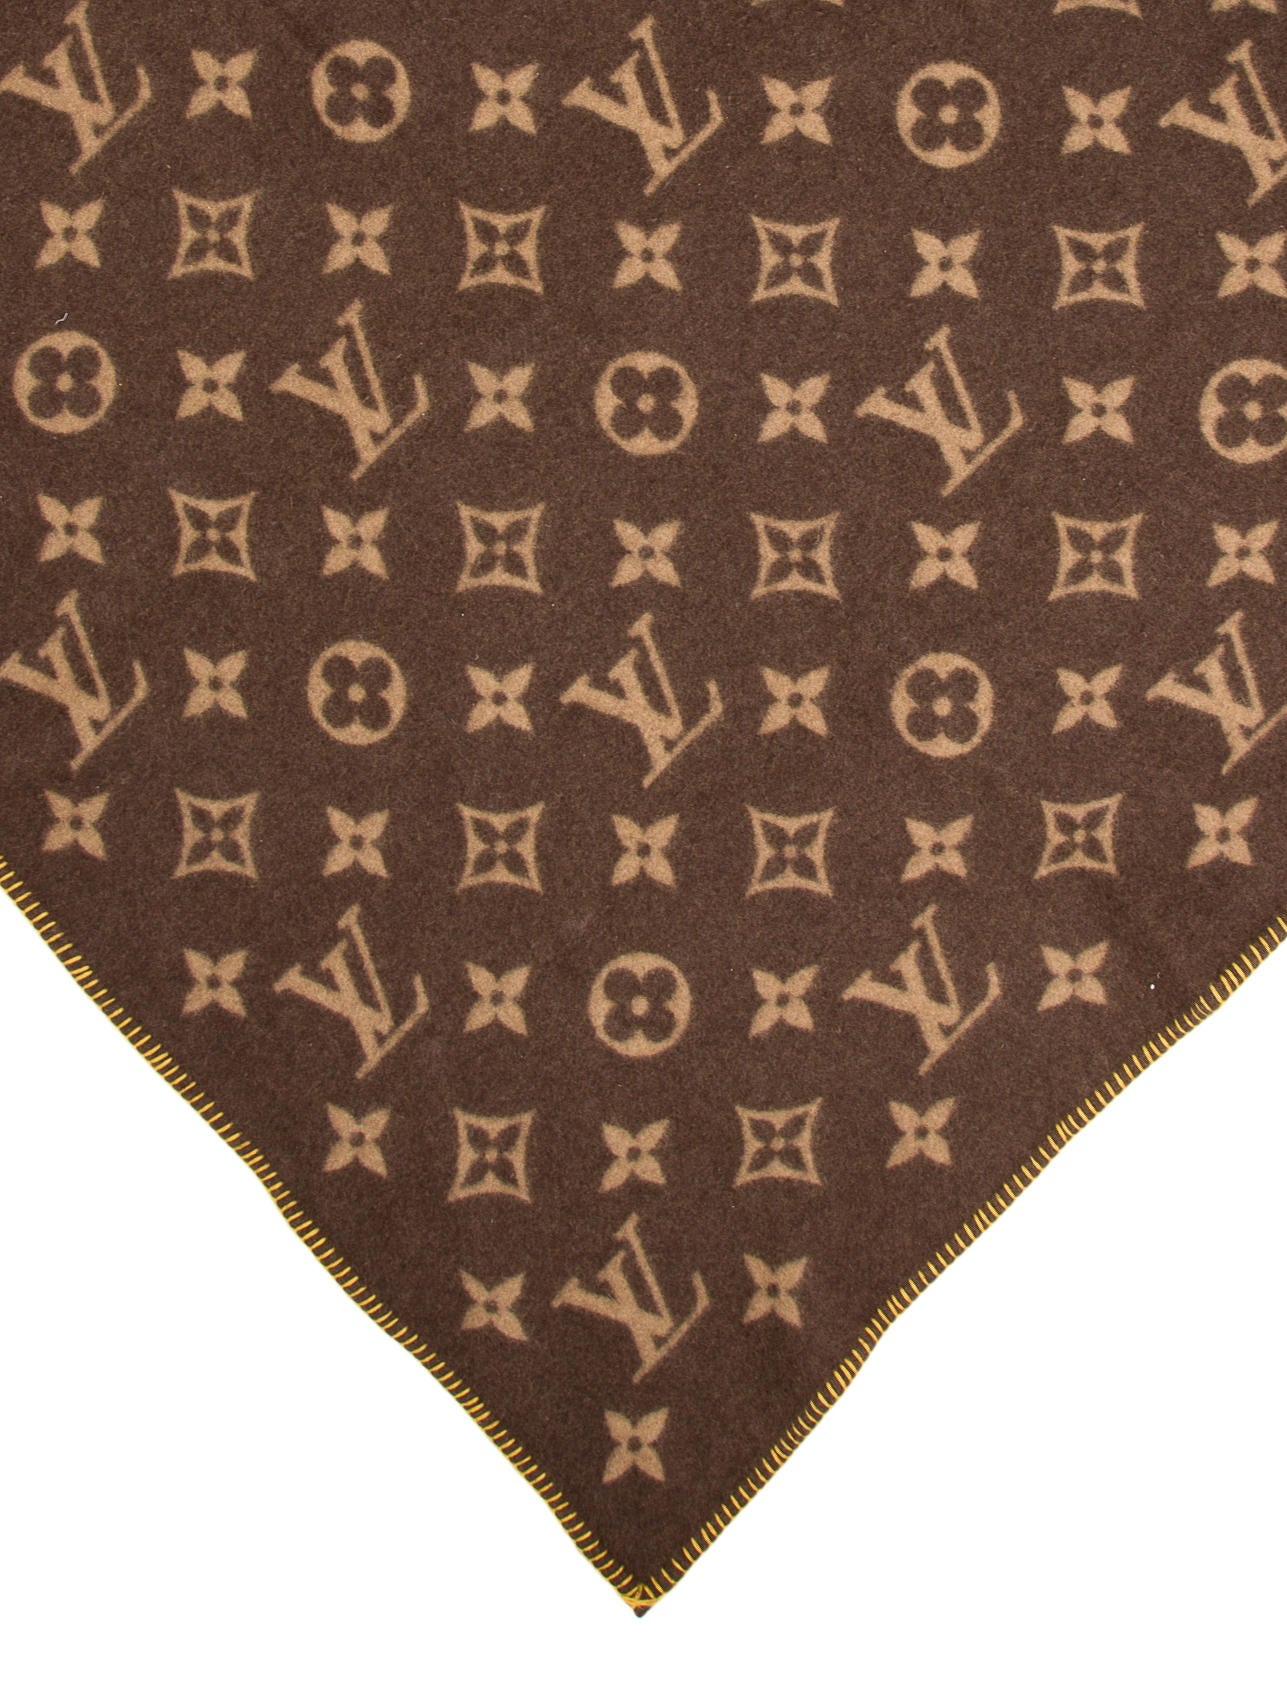 Louis Vuitton Monogram Throw Blanket Pillows And Throws  : LOU1115563enlarged from www.therealreal.com size 1287 x 1698 jpeg 309kB